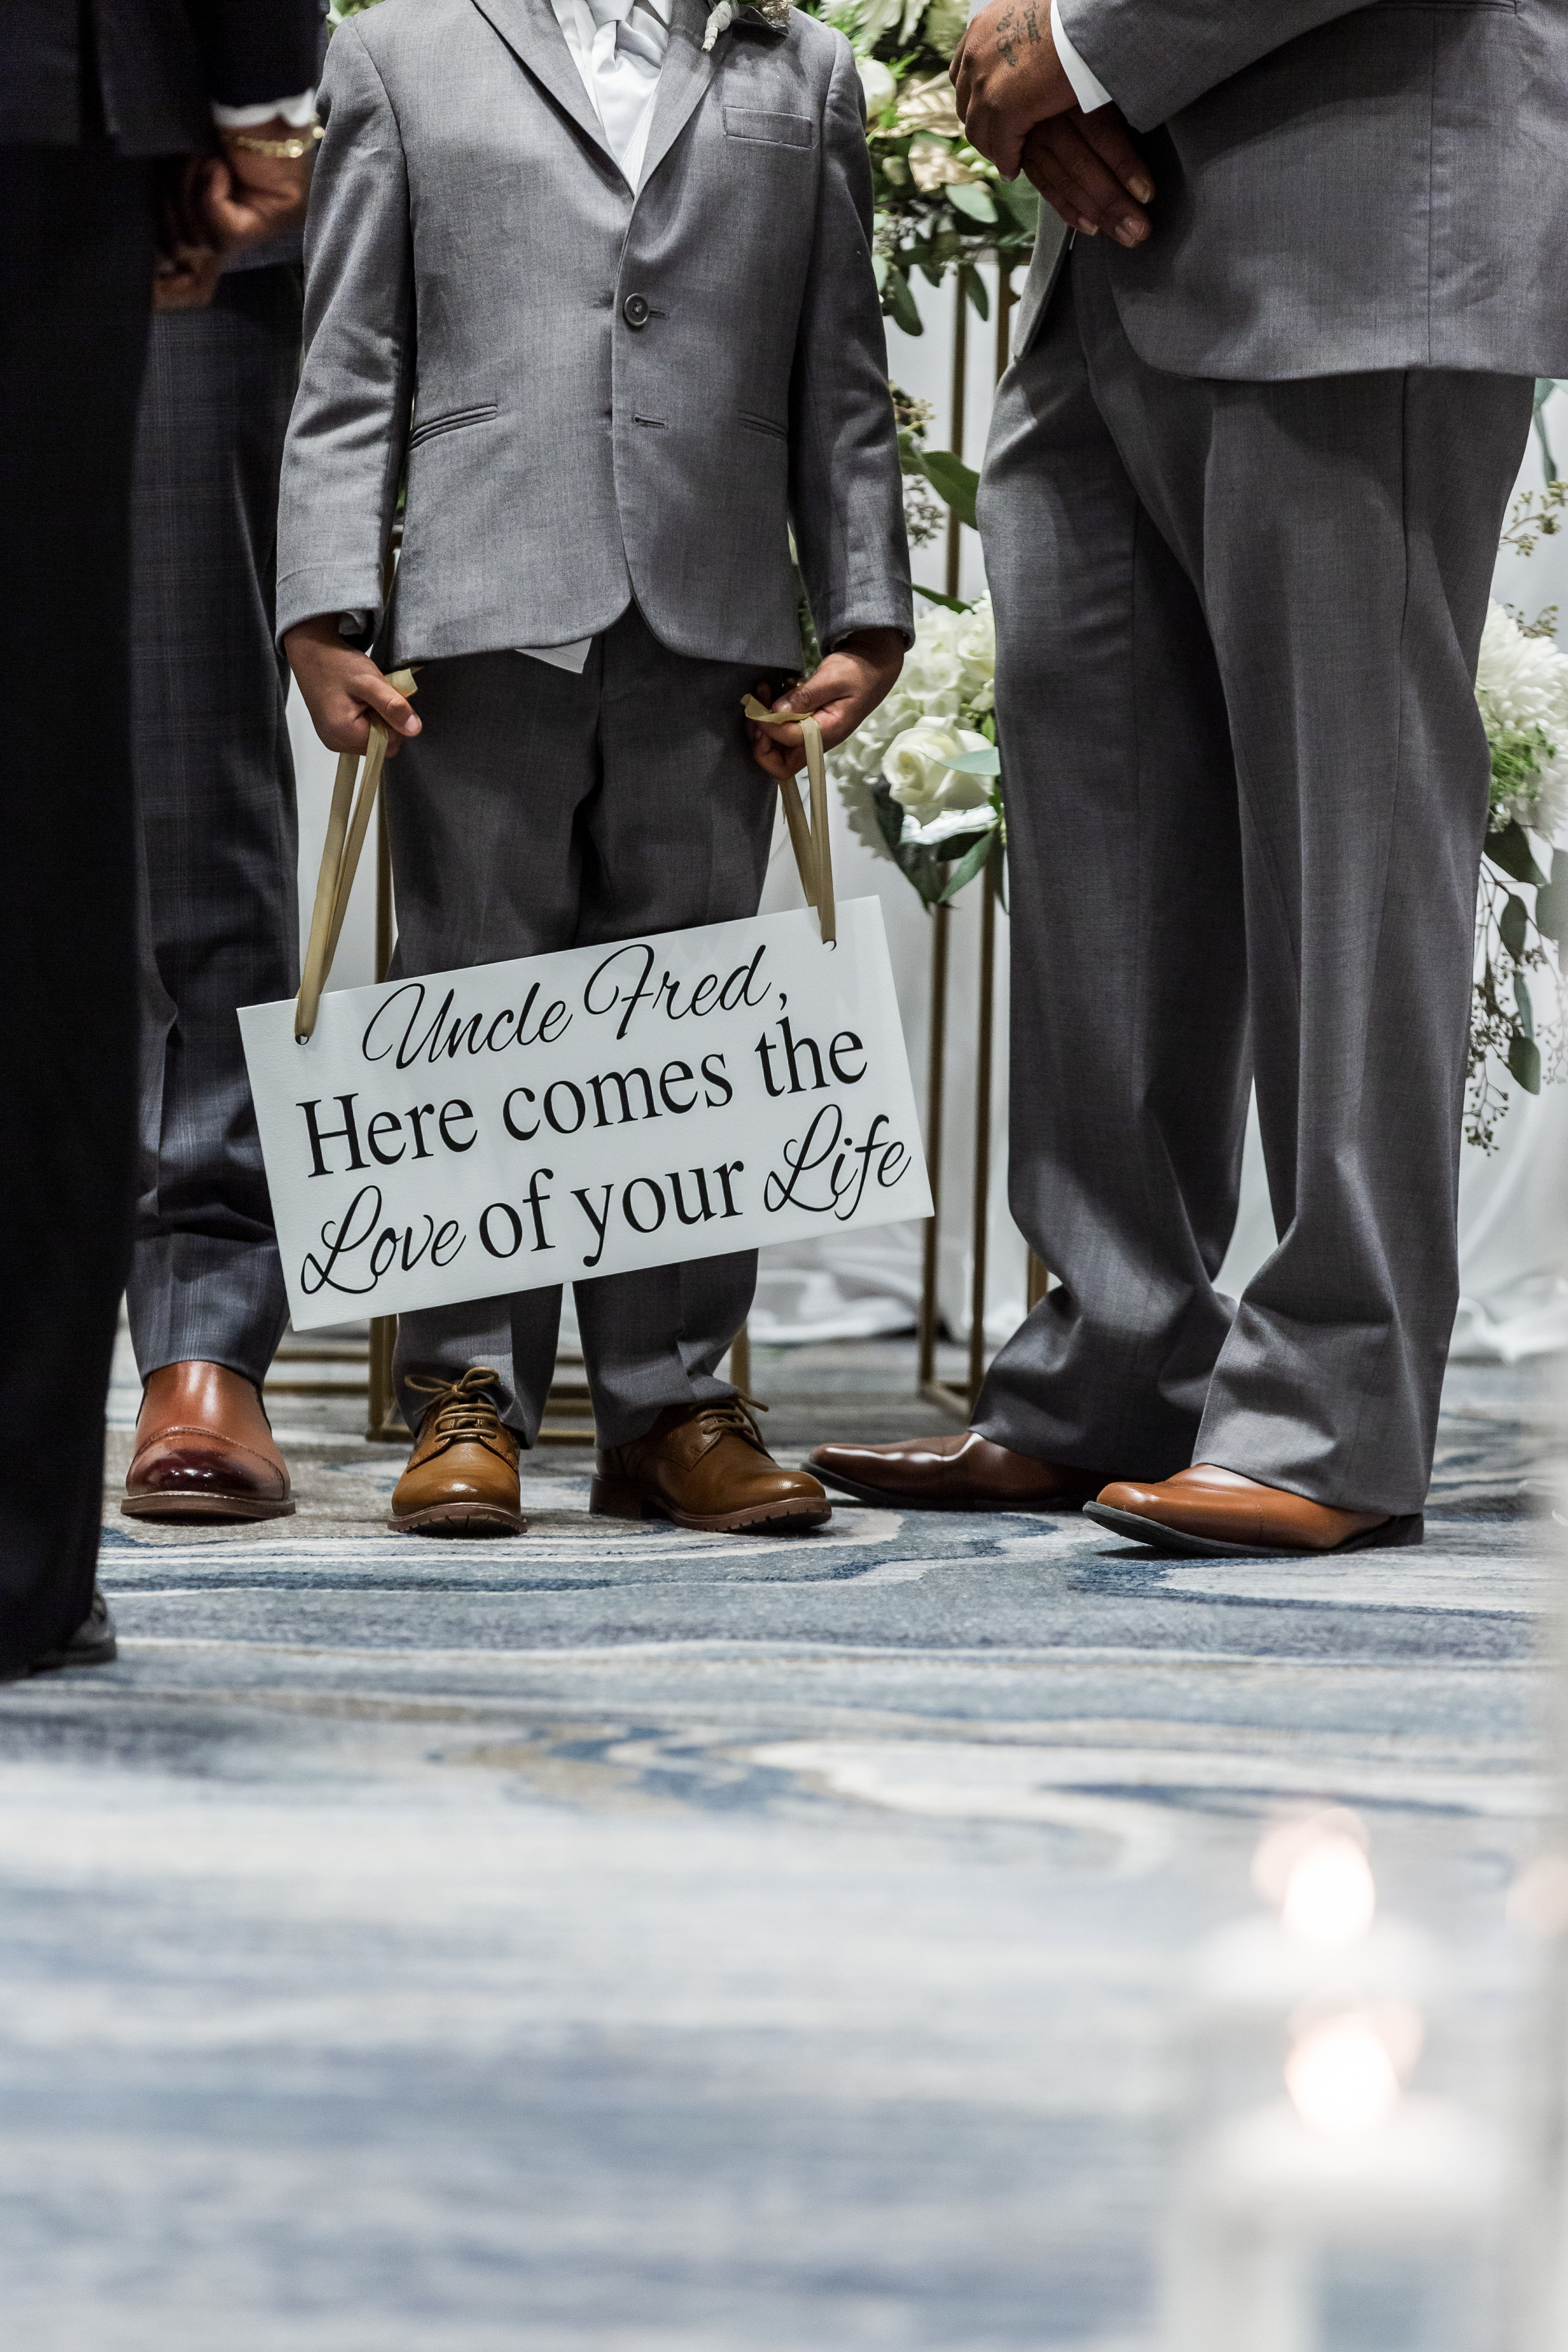 The ring bearer standing with the groom at the alter during the wedding ceremony at the Hilton Main in Norfolk, Virginia.